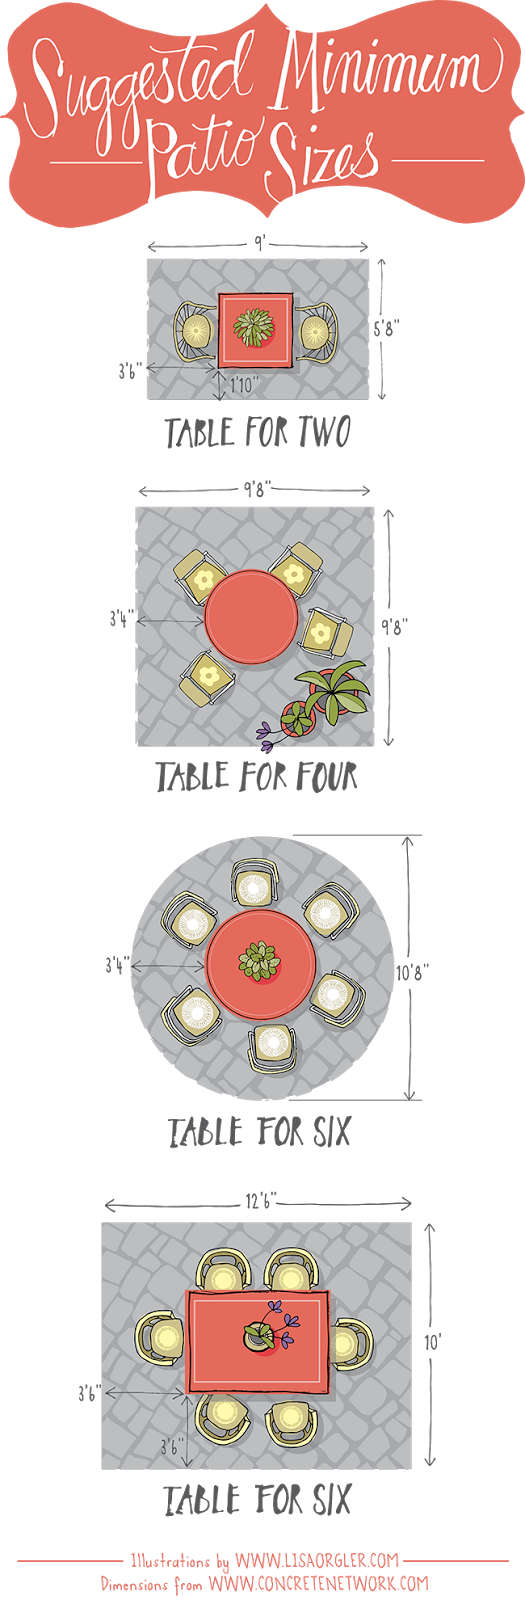 Patio+sizing.png